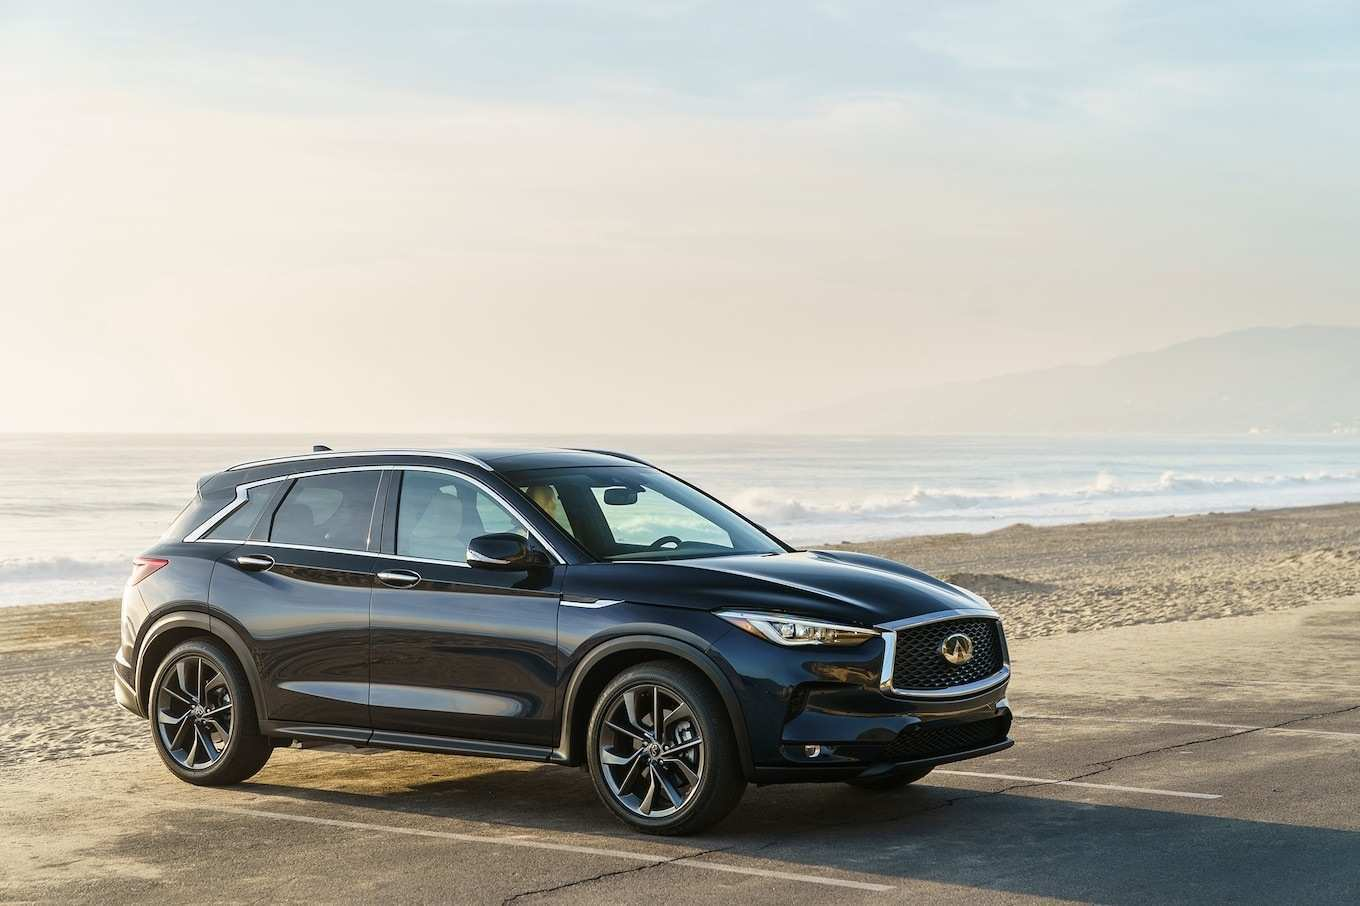 70 Gallery of The Infiniti Qx50 2019 Hybrid Concept Spesification for The Infiniti Qx50 2019 Hybrid Concept